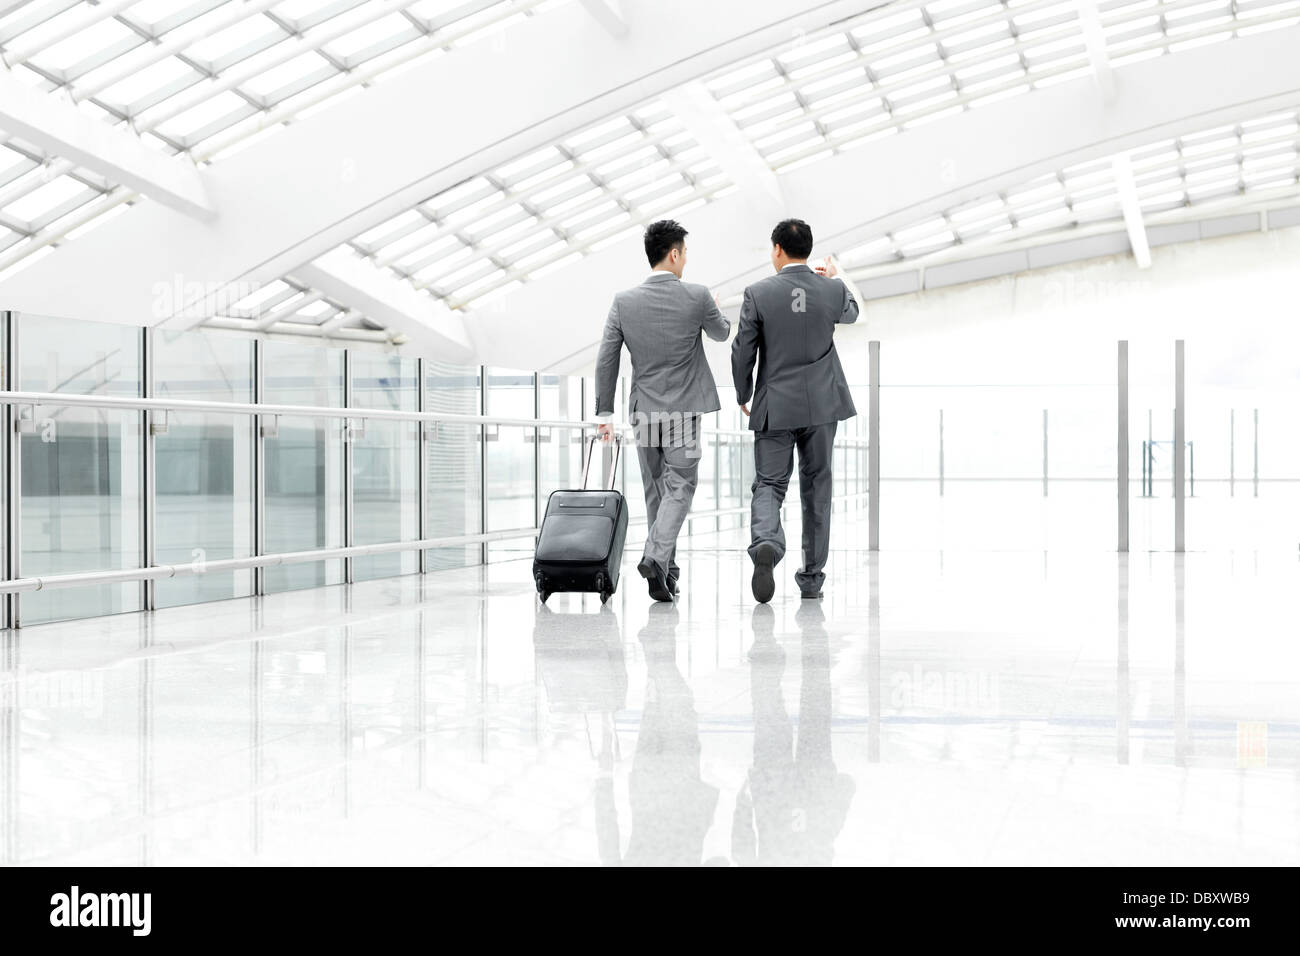 Business associates walking and talking in airport lobby - Stock Image